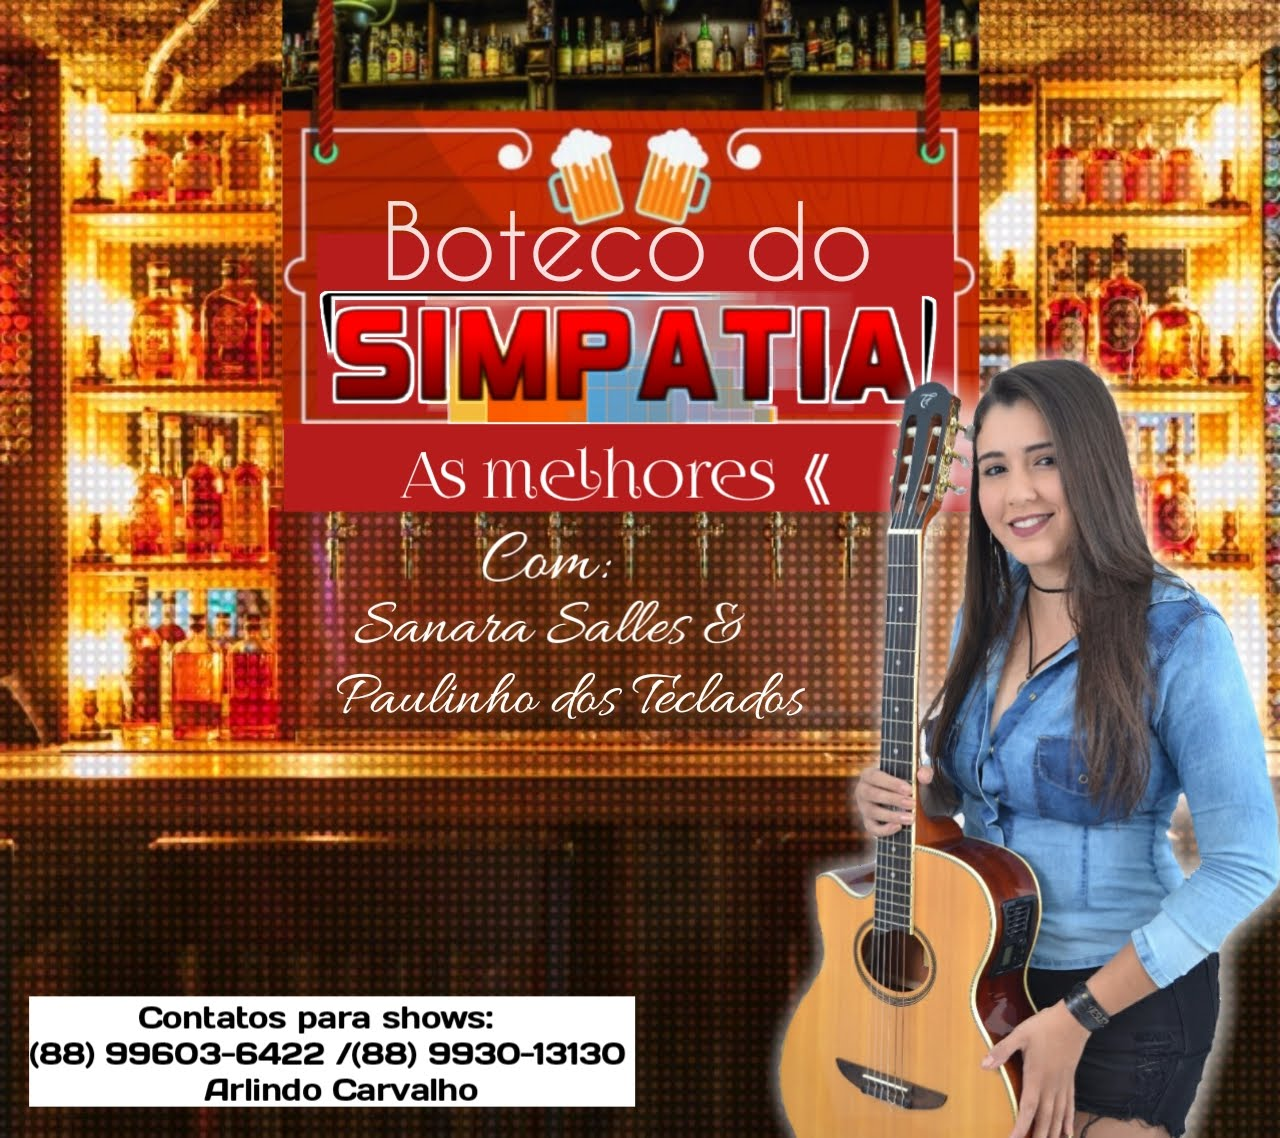 BOTECO DO SIMPATIA